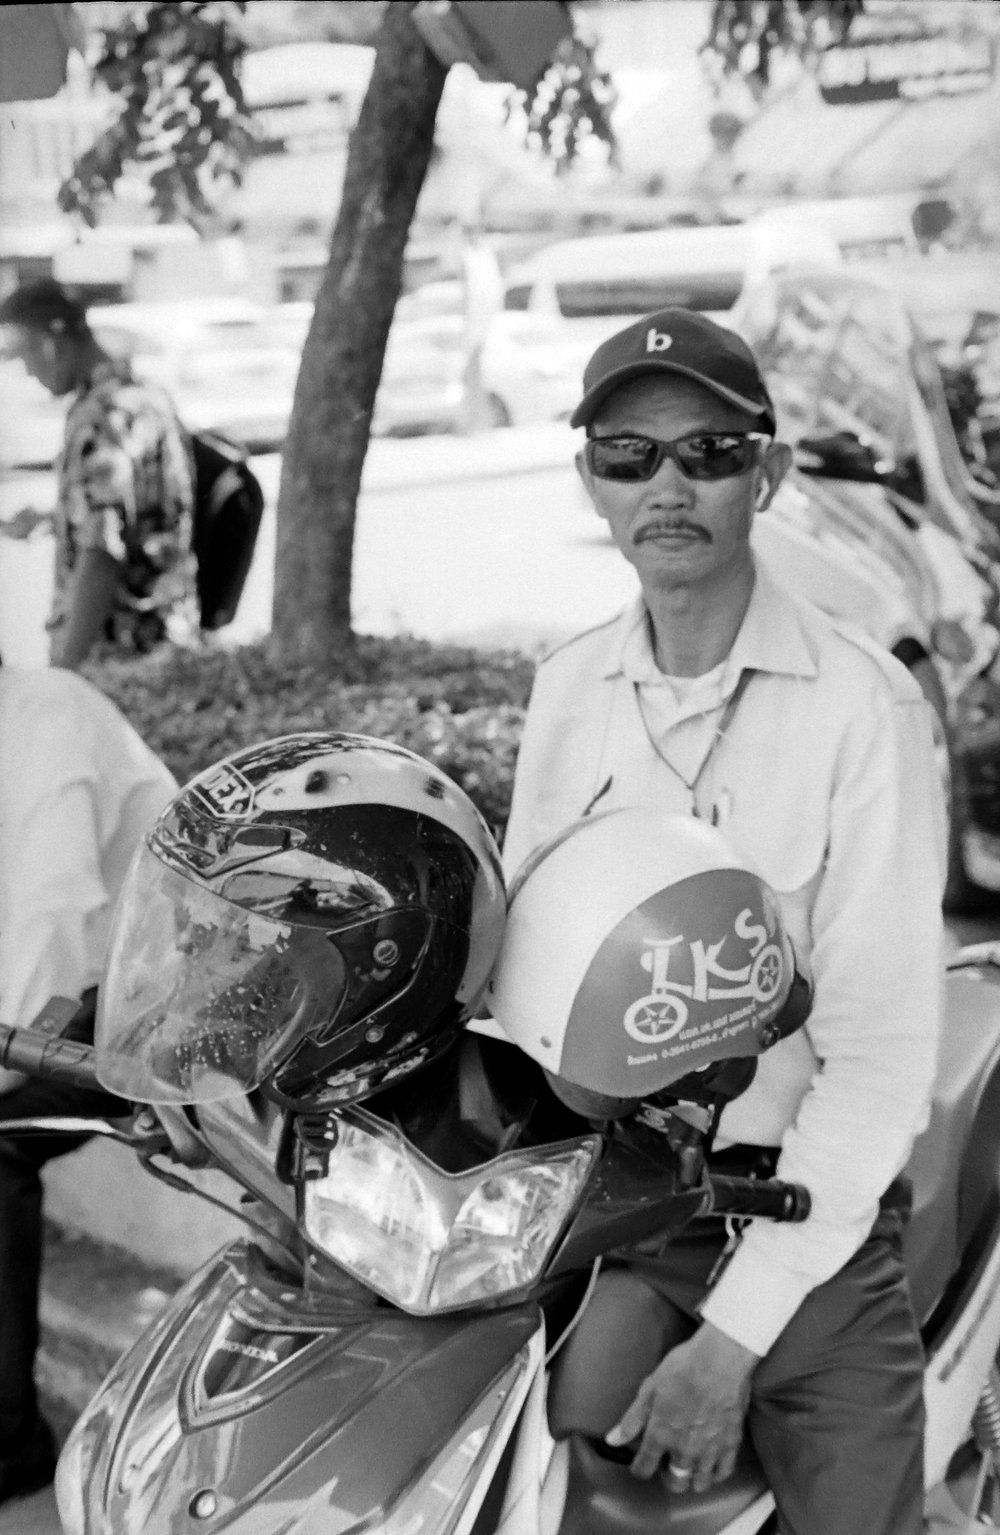 chromacomaphoto street photography bangkok thailand film tri x summicron rigid 50 leica m4 black and white (8).JPG